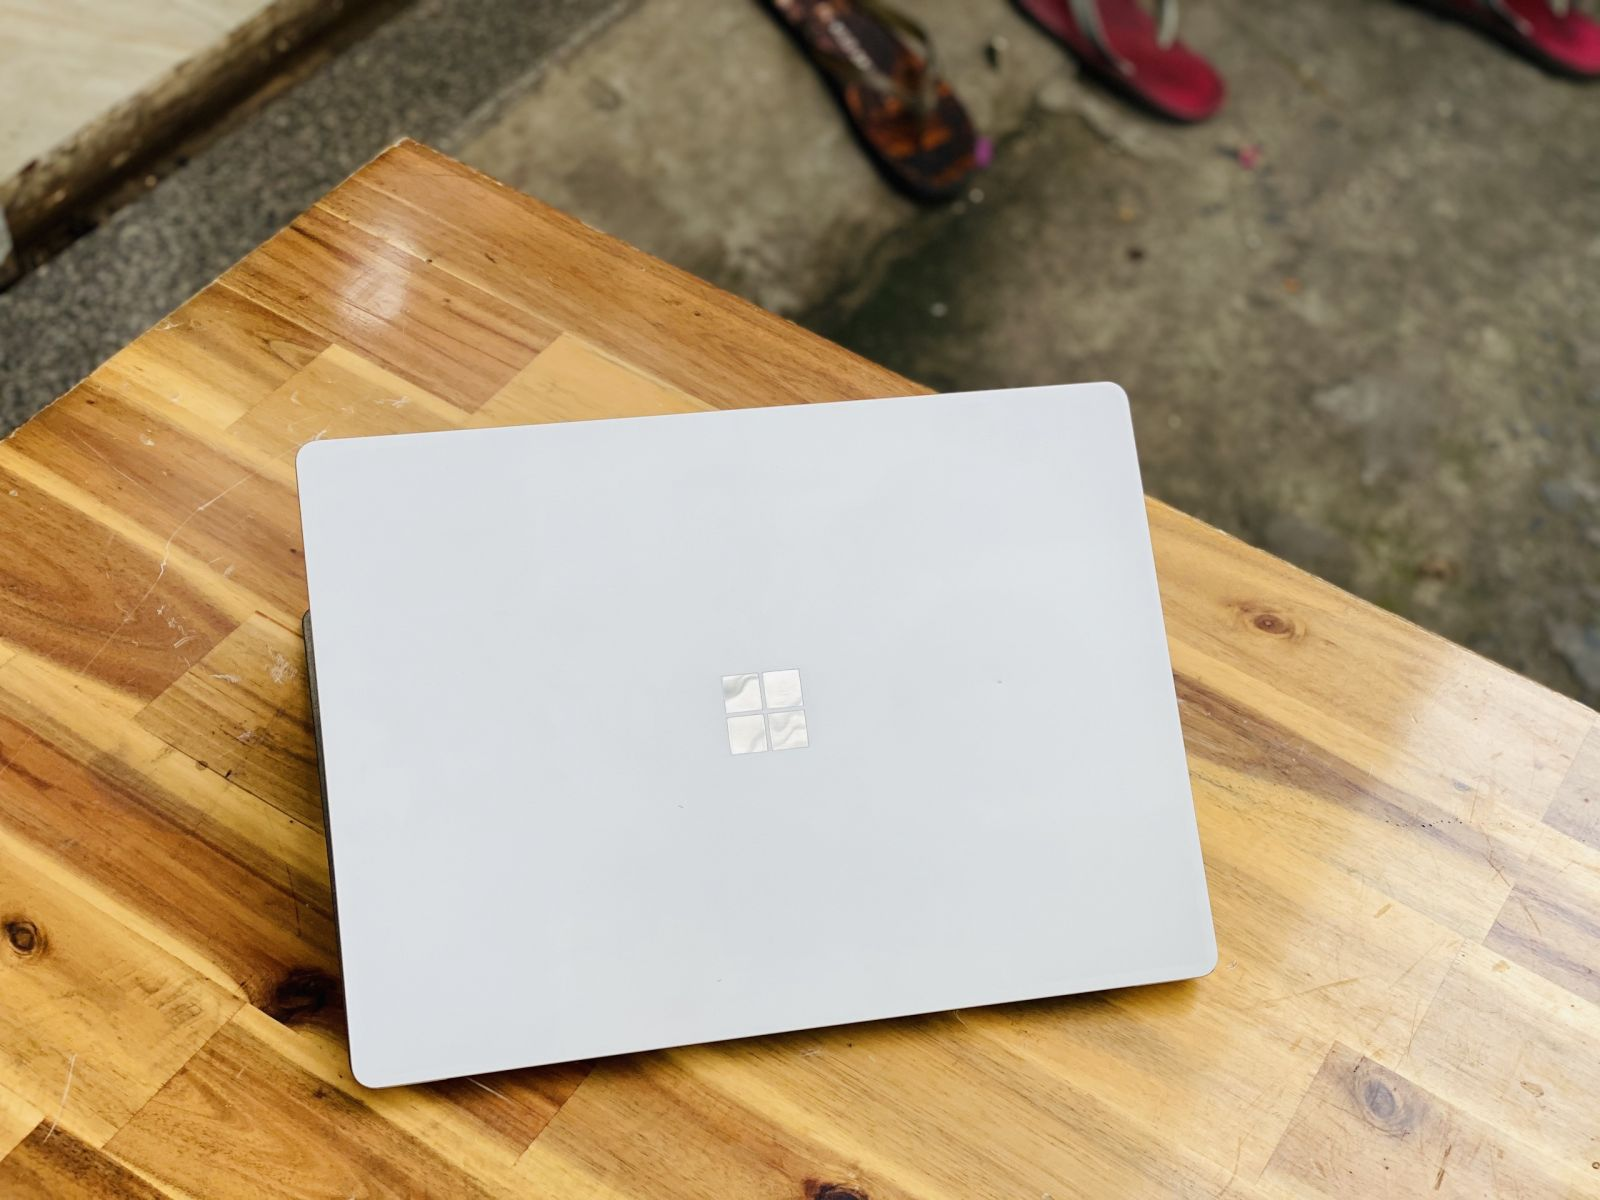 Surface Laptop 2/ i5 8250U/ 8G/ SSD128/ 2K/ Touch/ Win 10/ 13.5in/ Giá rẻ3